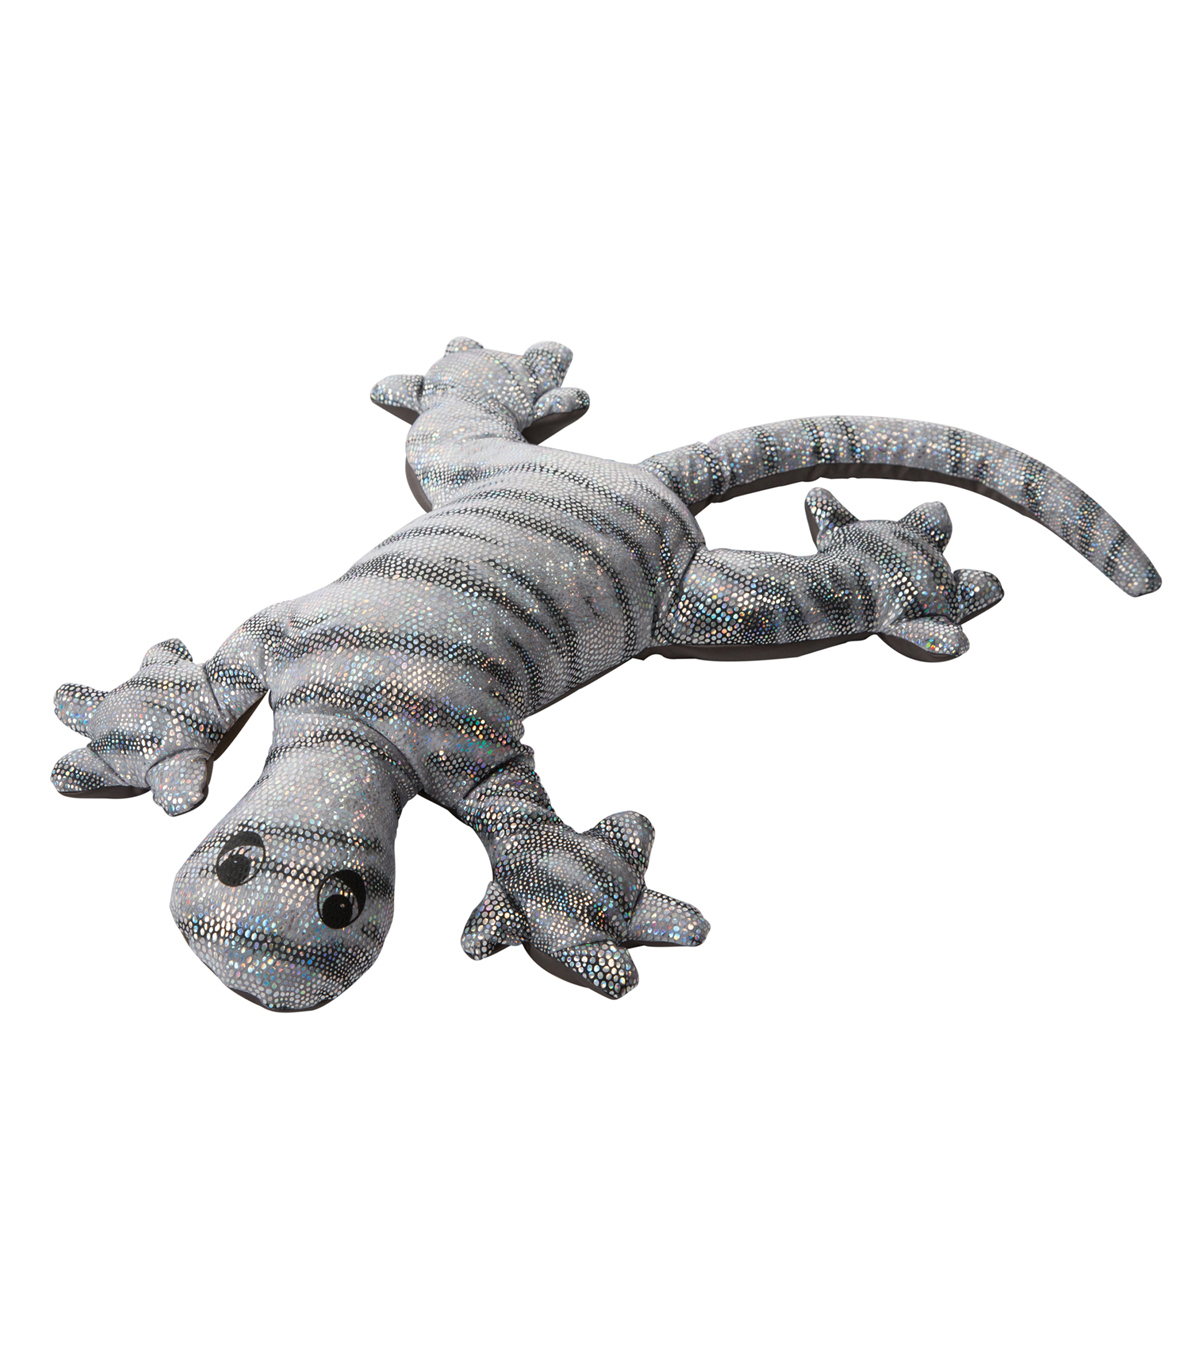 Manimo Silver Weighted Lizard, 2 kg